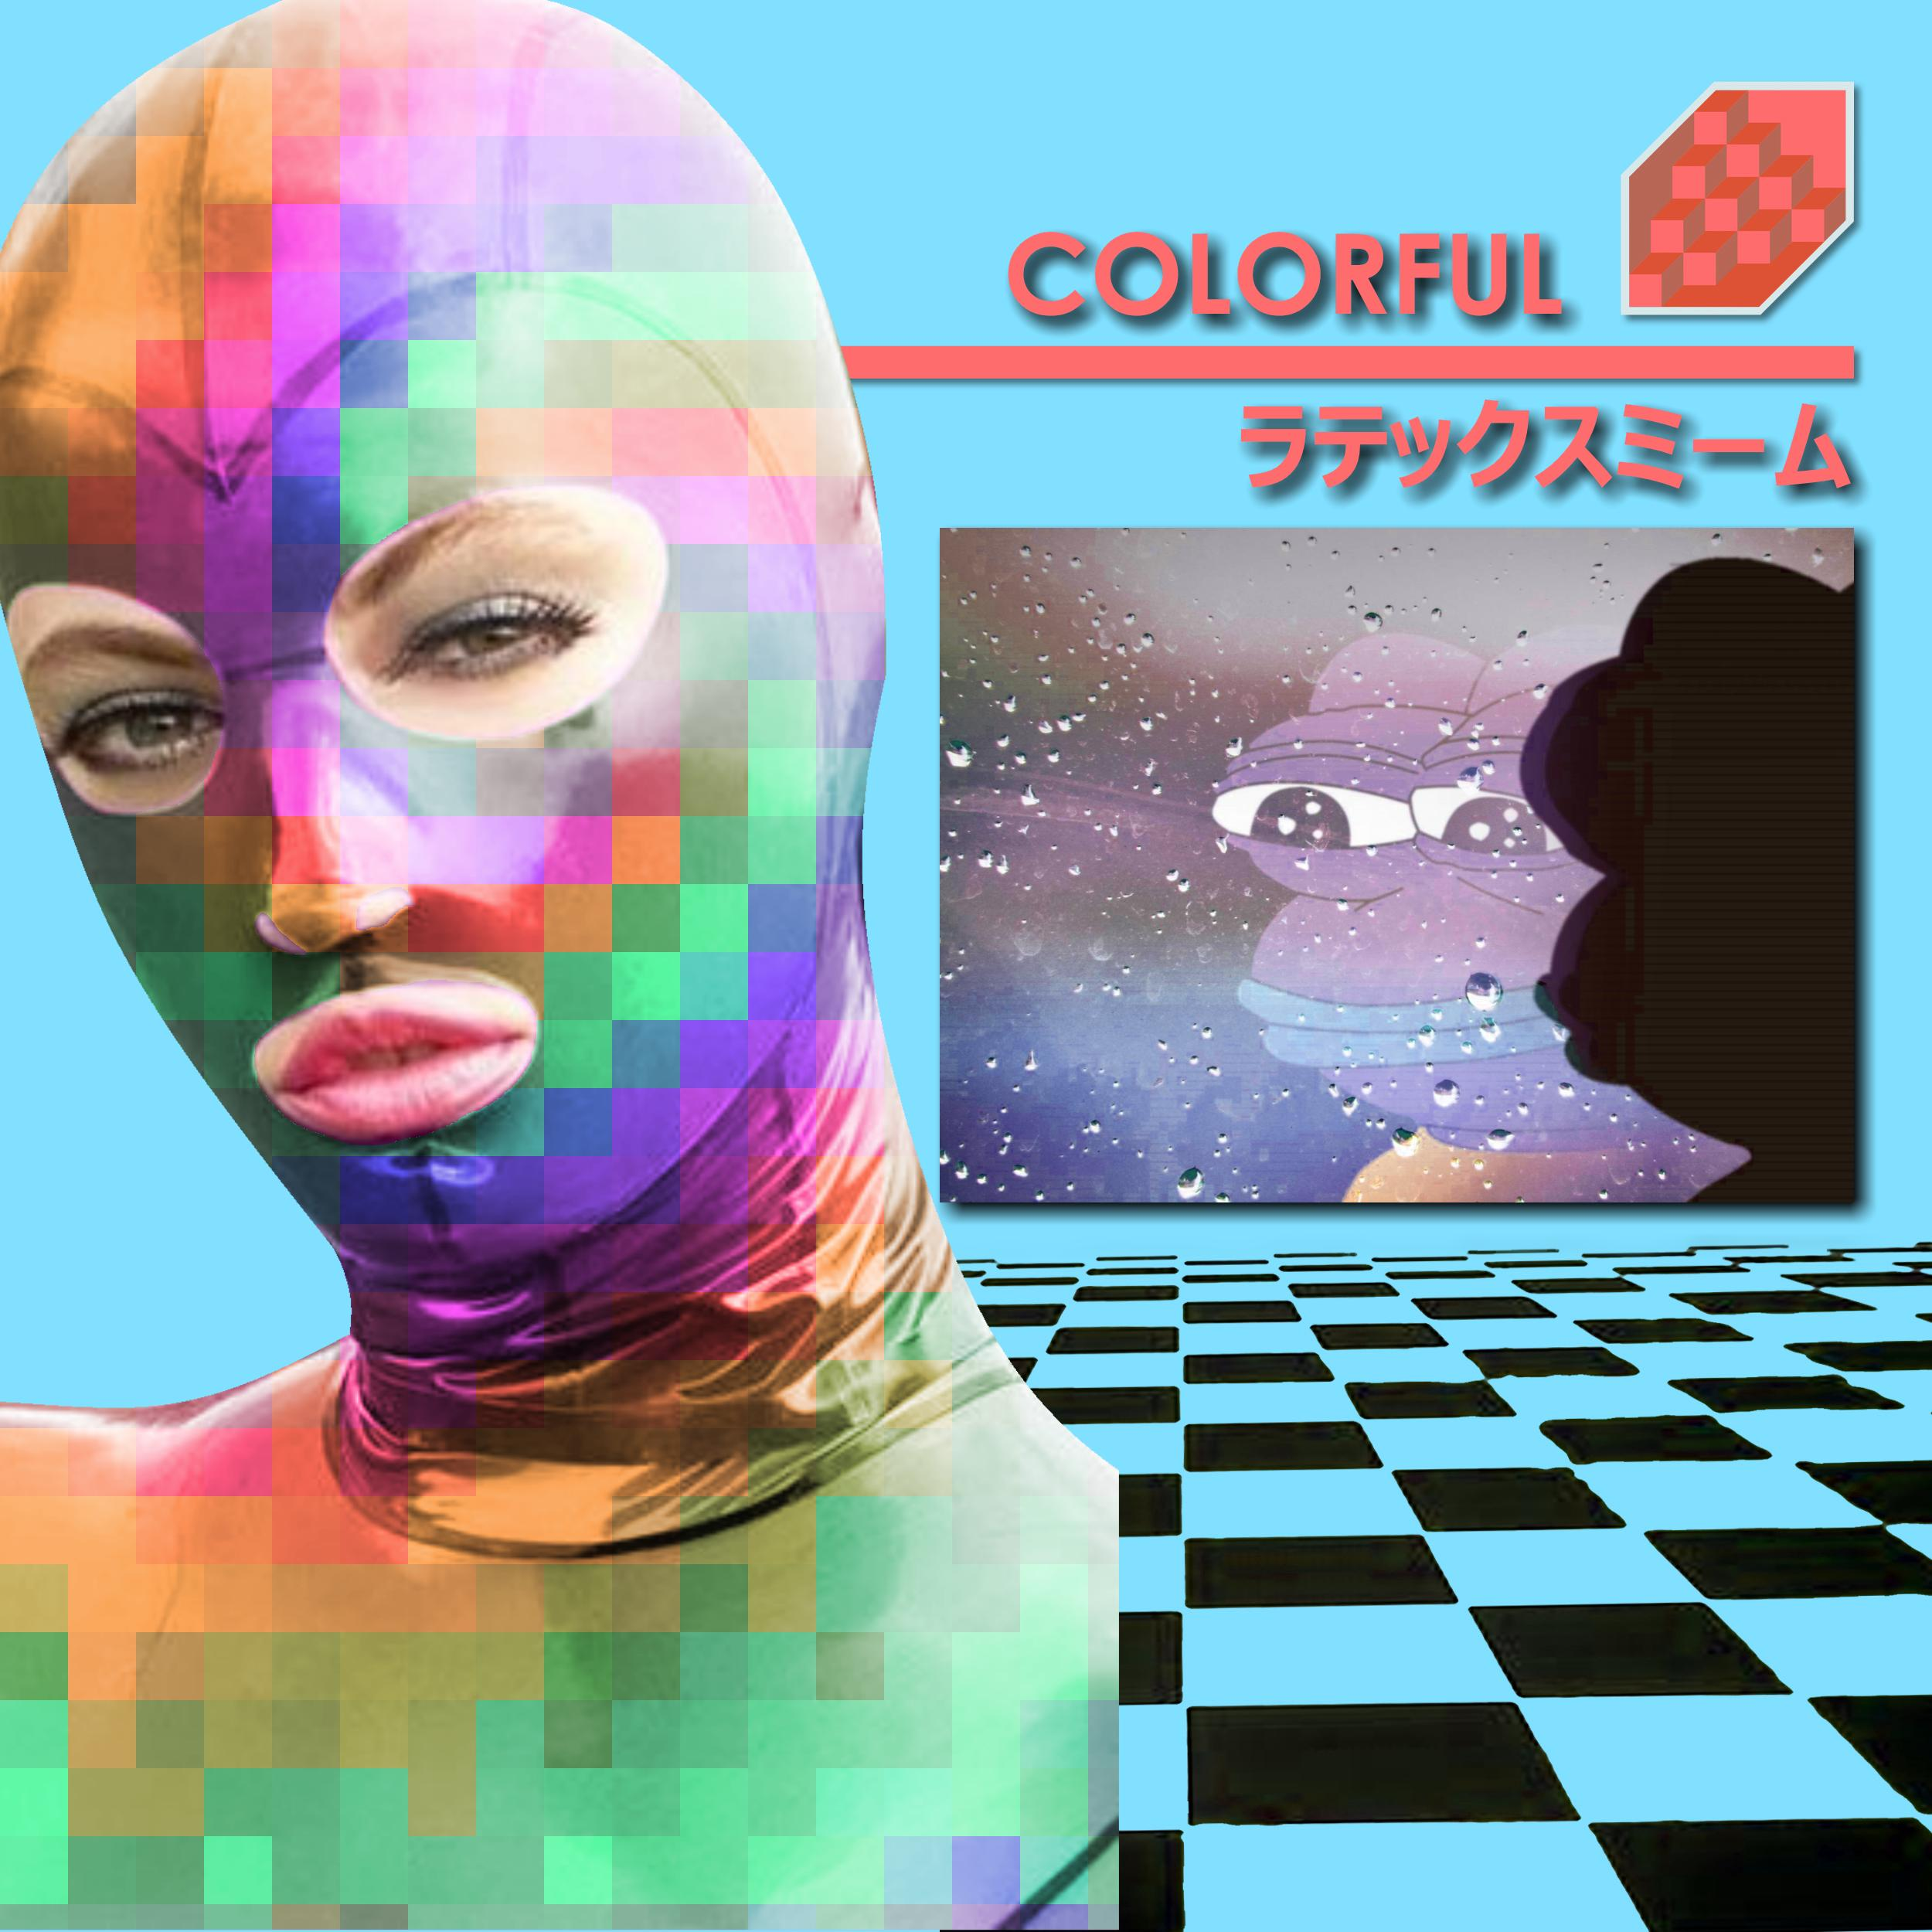 Colorful Floral Shoppe フローラルの専門店 Know Your Meme